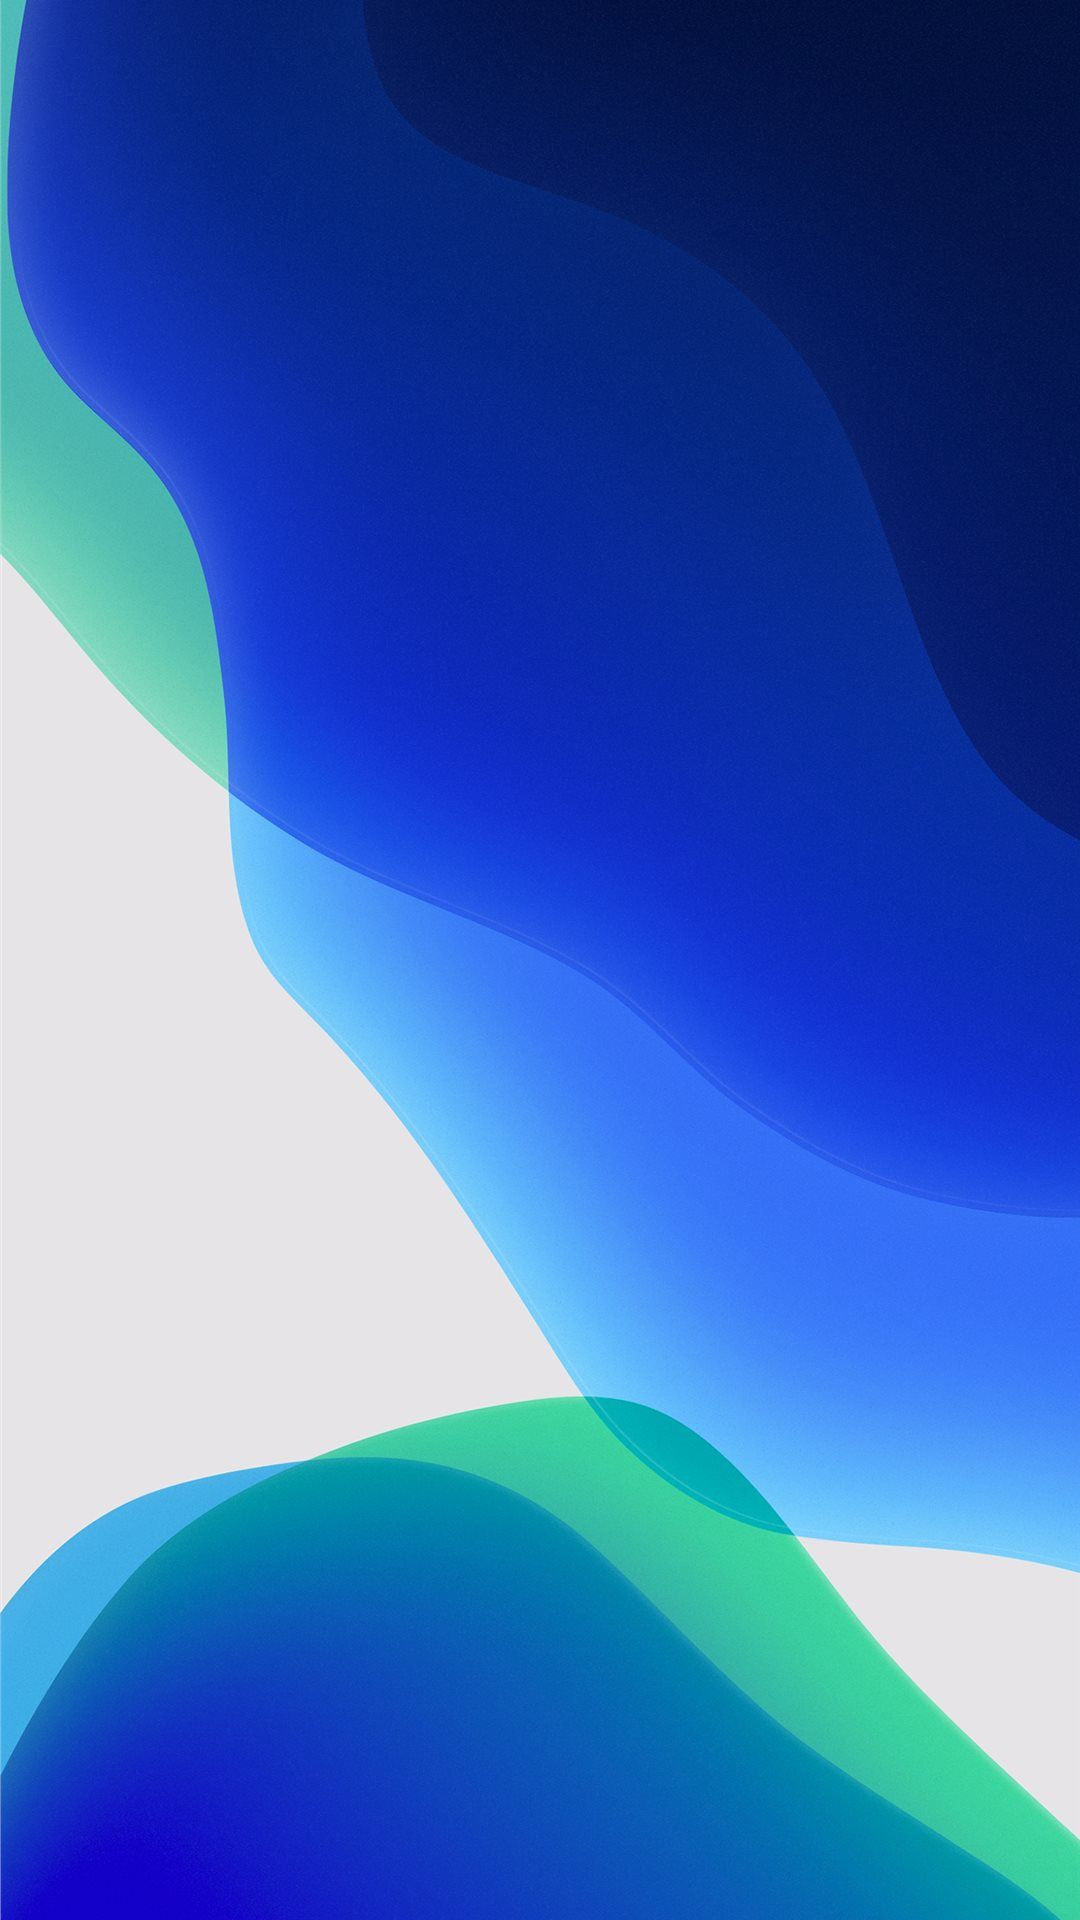 Ios 12 Wallpaper 4k Iphone X Ideas Wallpaper 4kwallpaper 4kwallpaperphone 4kchristmaswallpaperi Wallpaper Iphone Christmas Apple Picture Apple Wallpaper